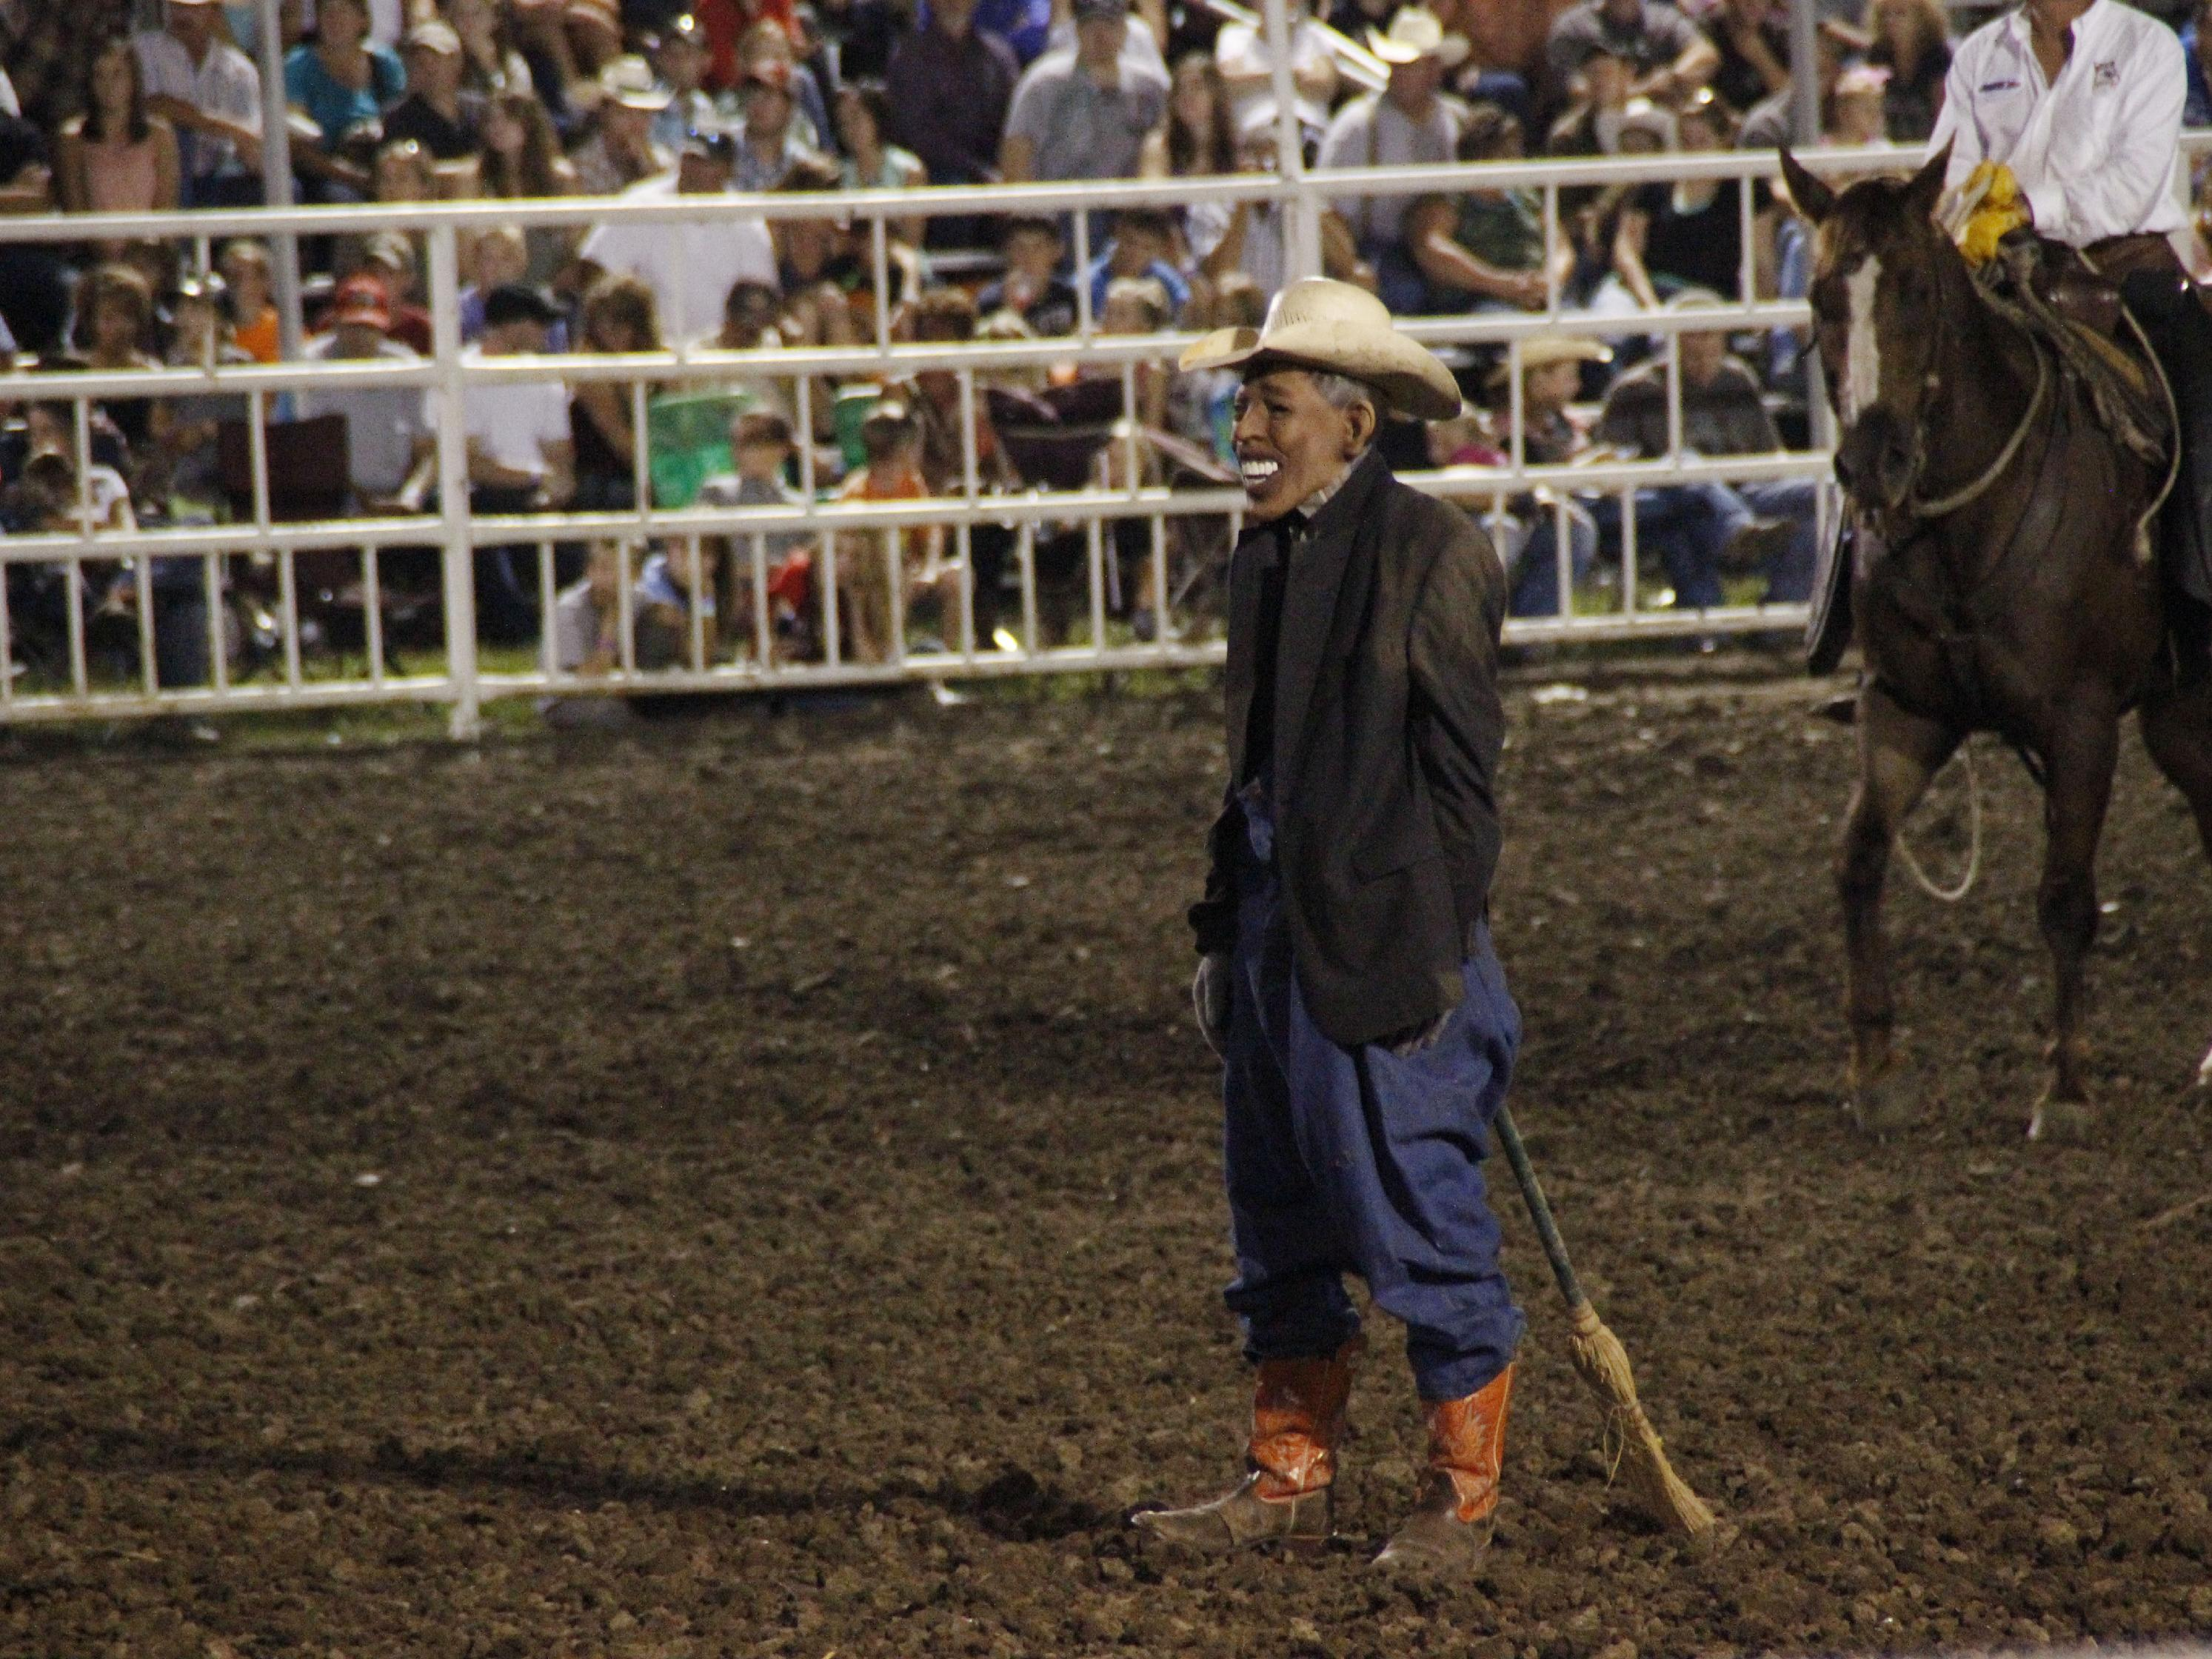 Mo State Fair Bans Rodeo Clown Who Mocked Obama